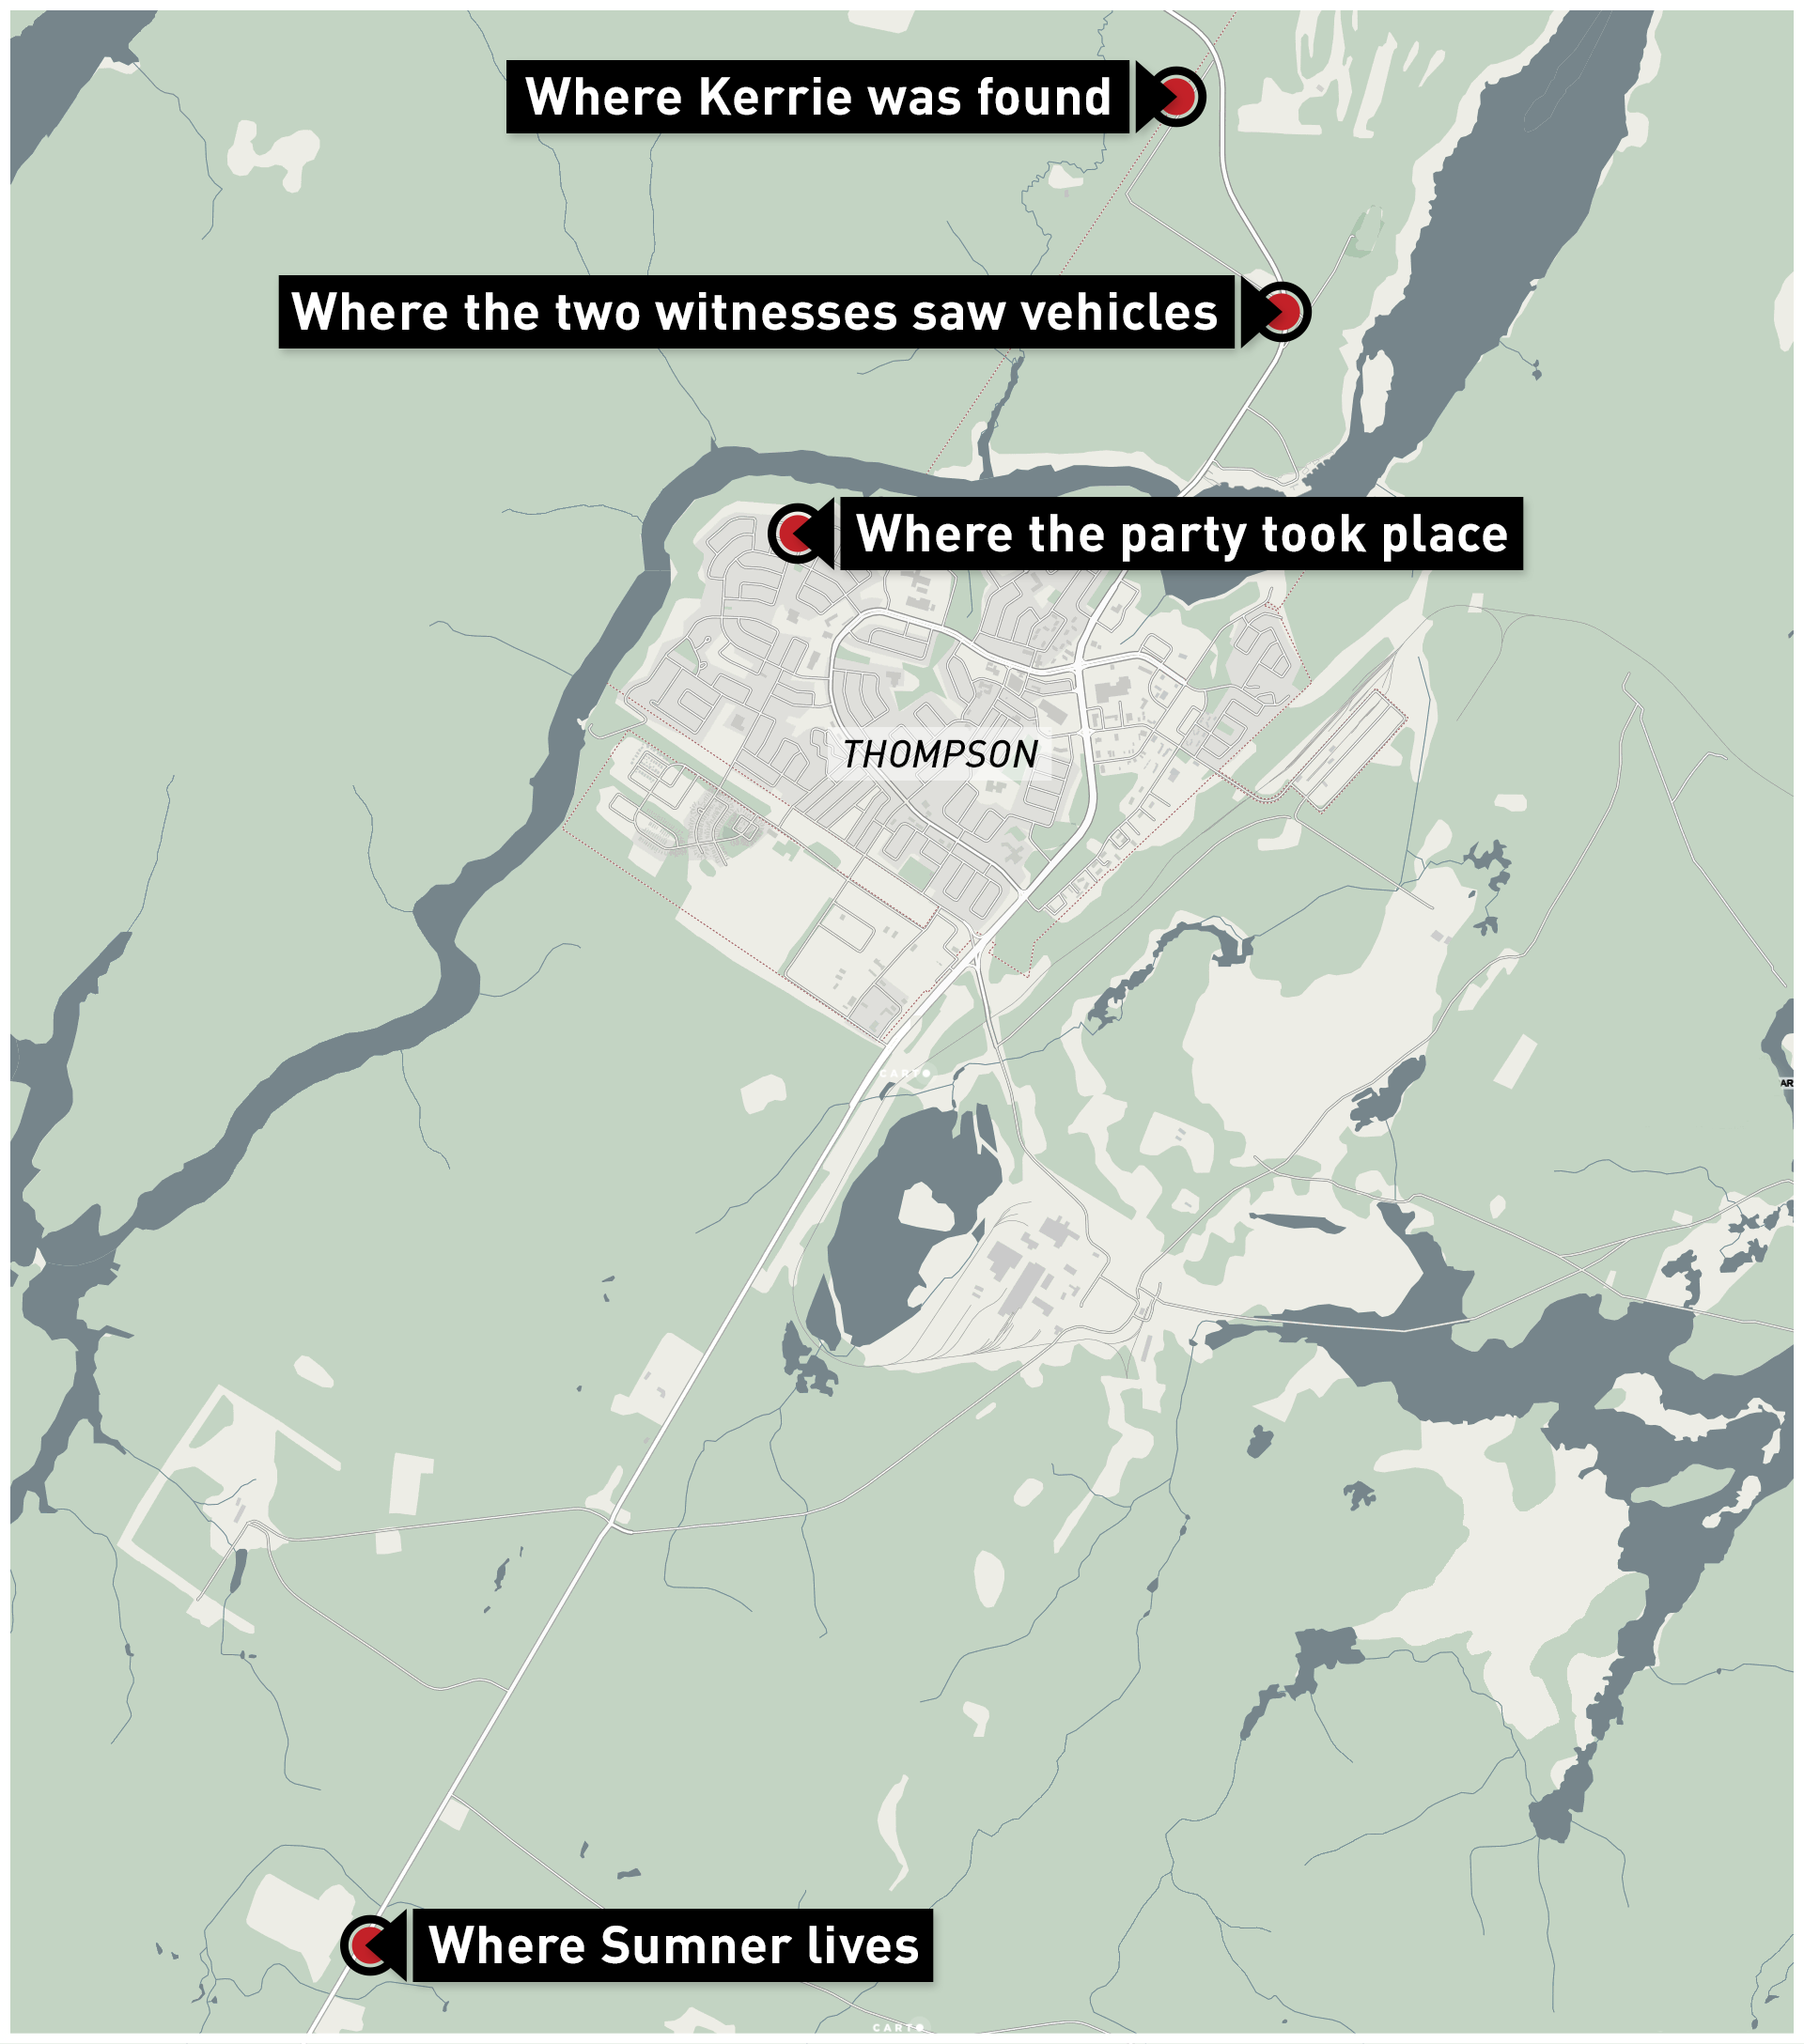 Kerrie's body was found near a horse stable road through the woods, not far from the house party where she was last seen. (CBC News Graphics)